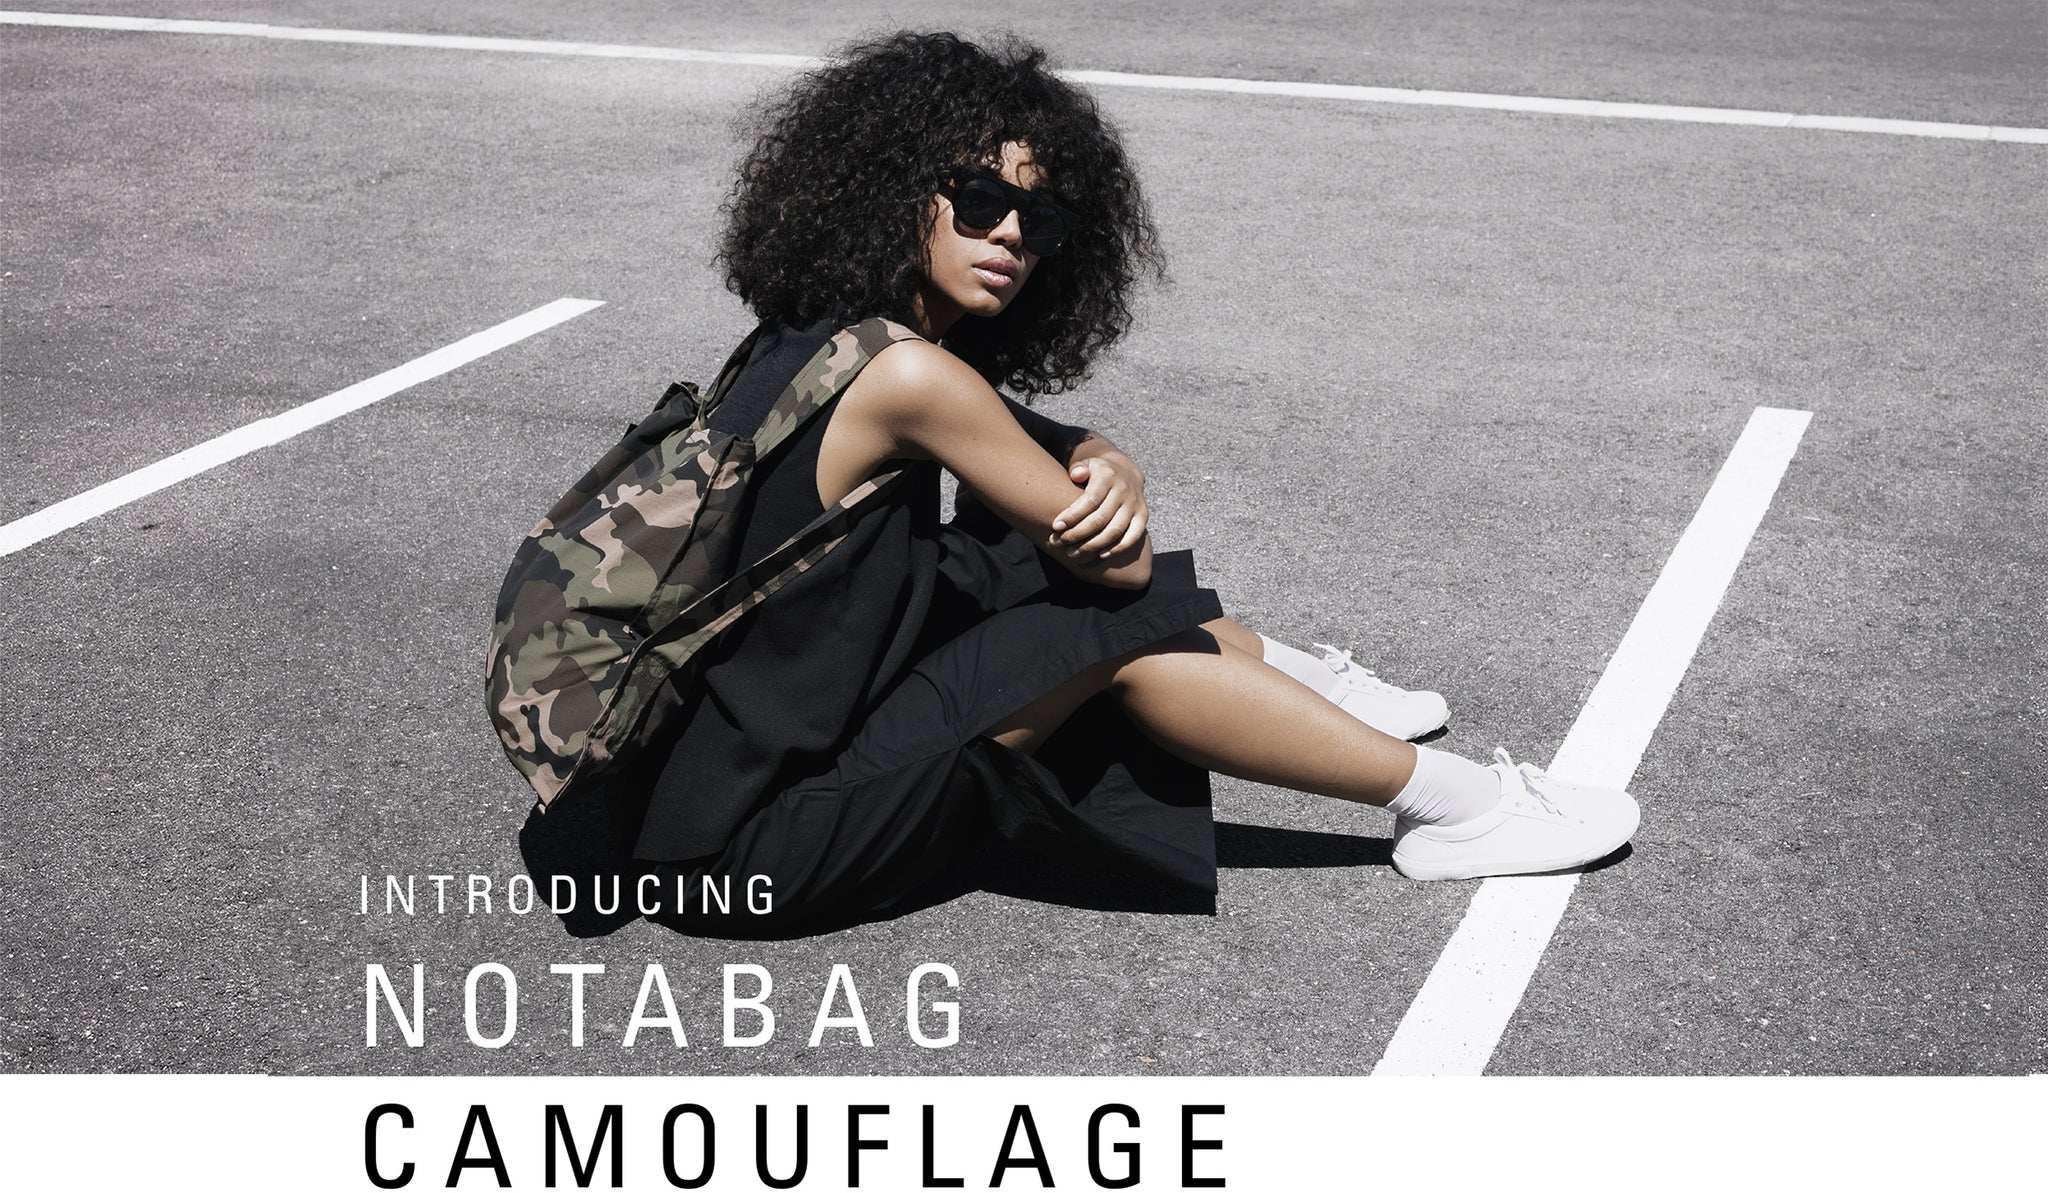 Notabag Camouflage Collection